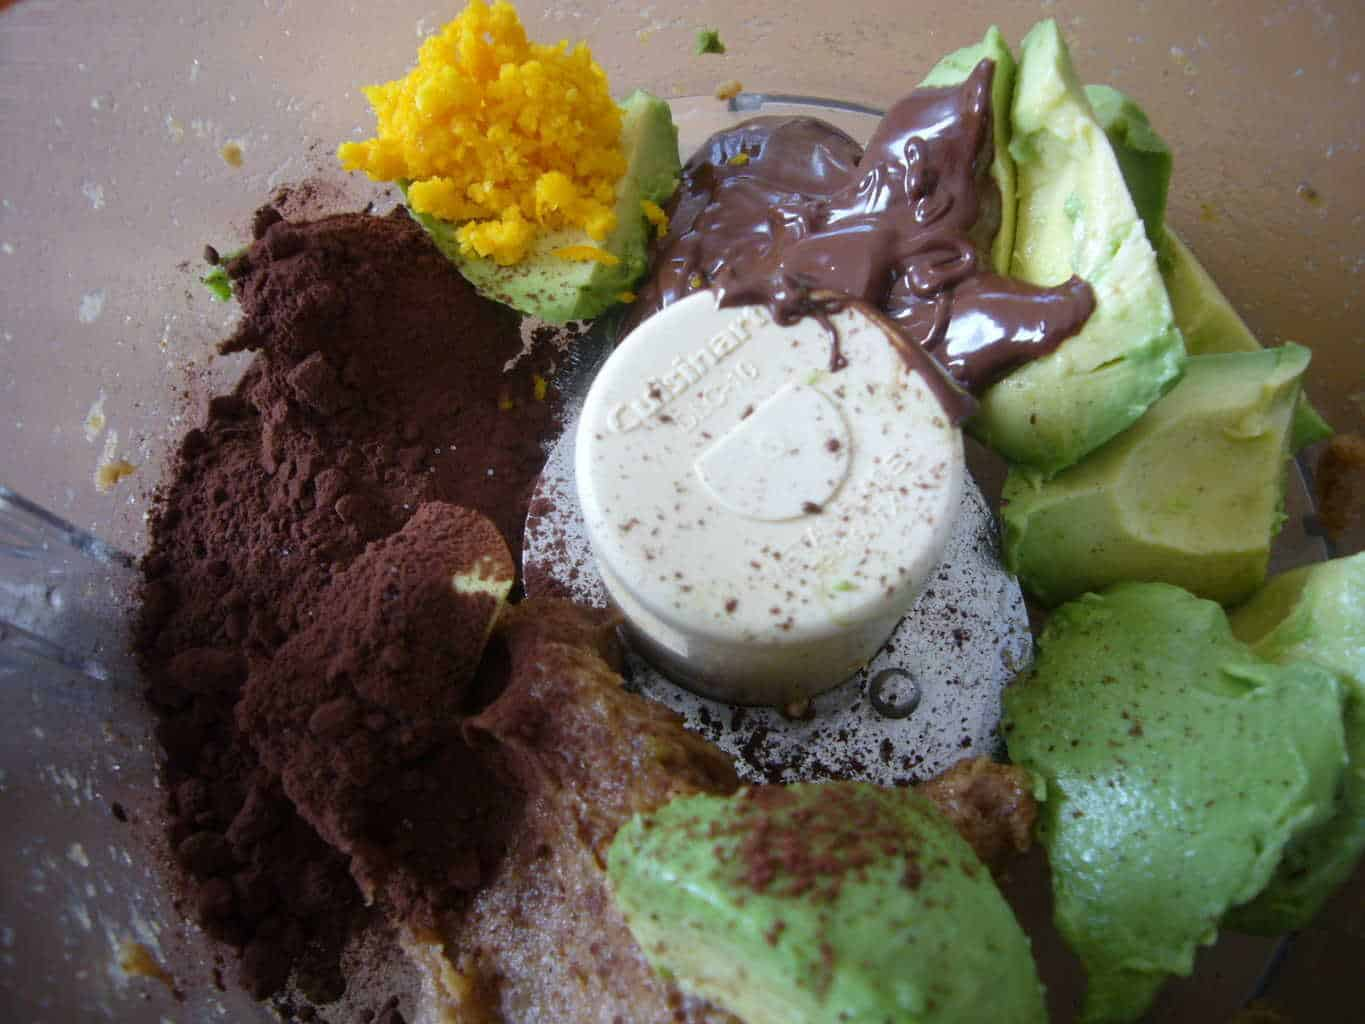 Placing all the ingredients in the food processor for avocado chocolate truffles